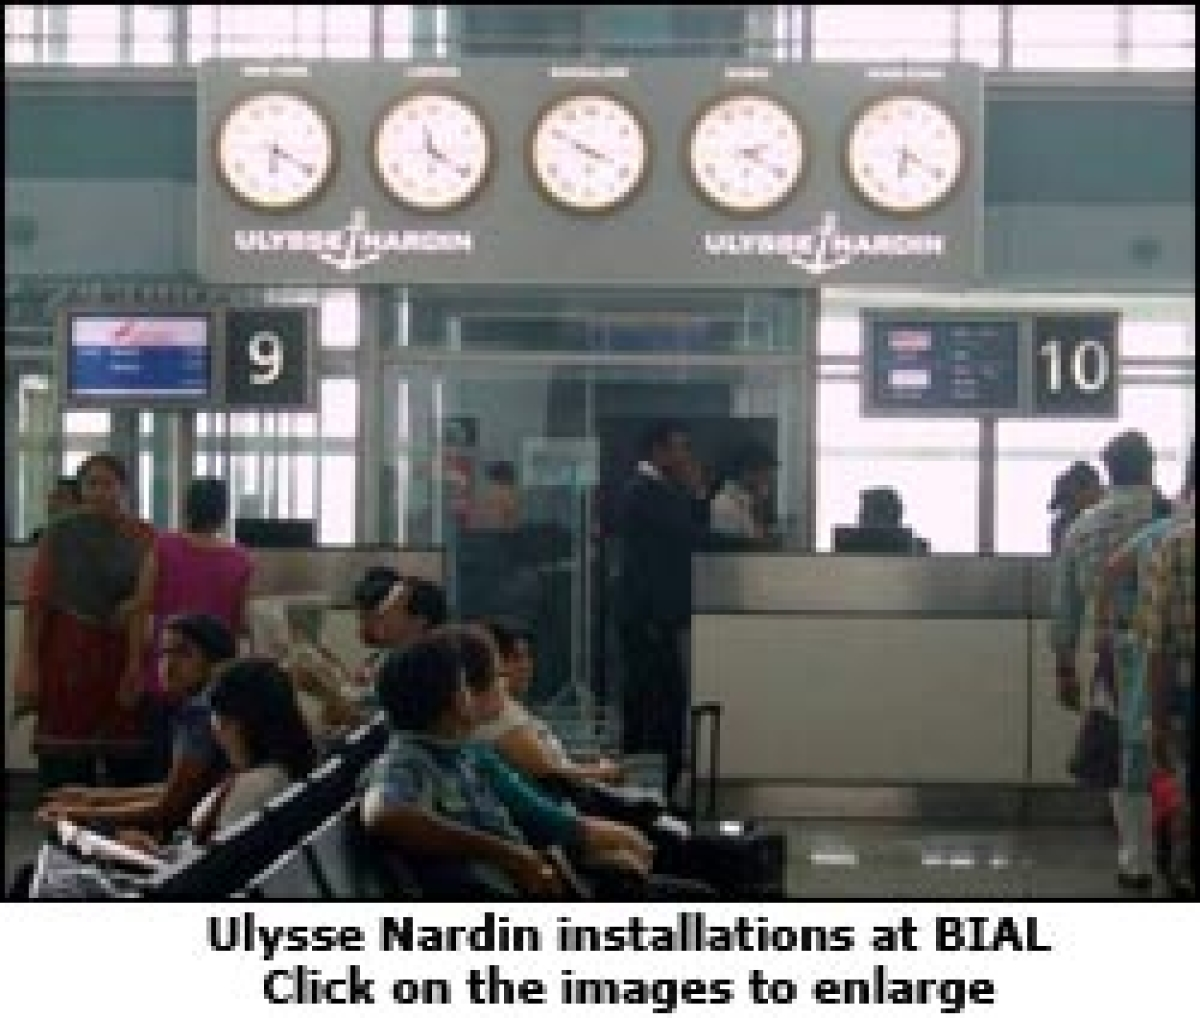 'It's time', says Swiss watch brand Ulysse Nardin at Bengaluru Airport